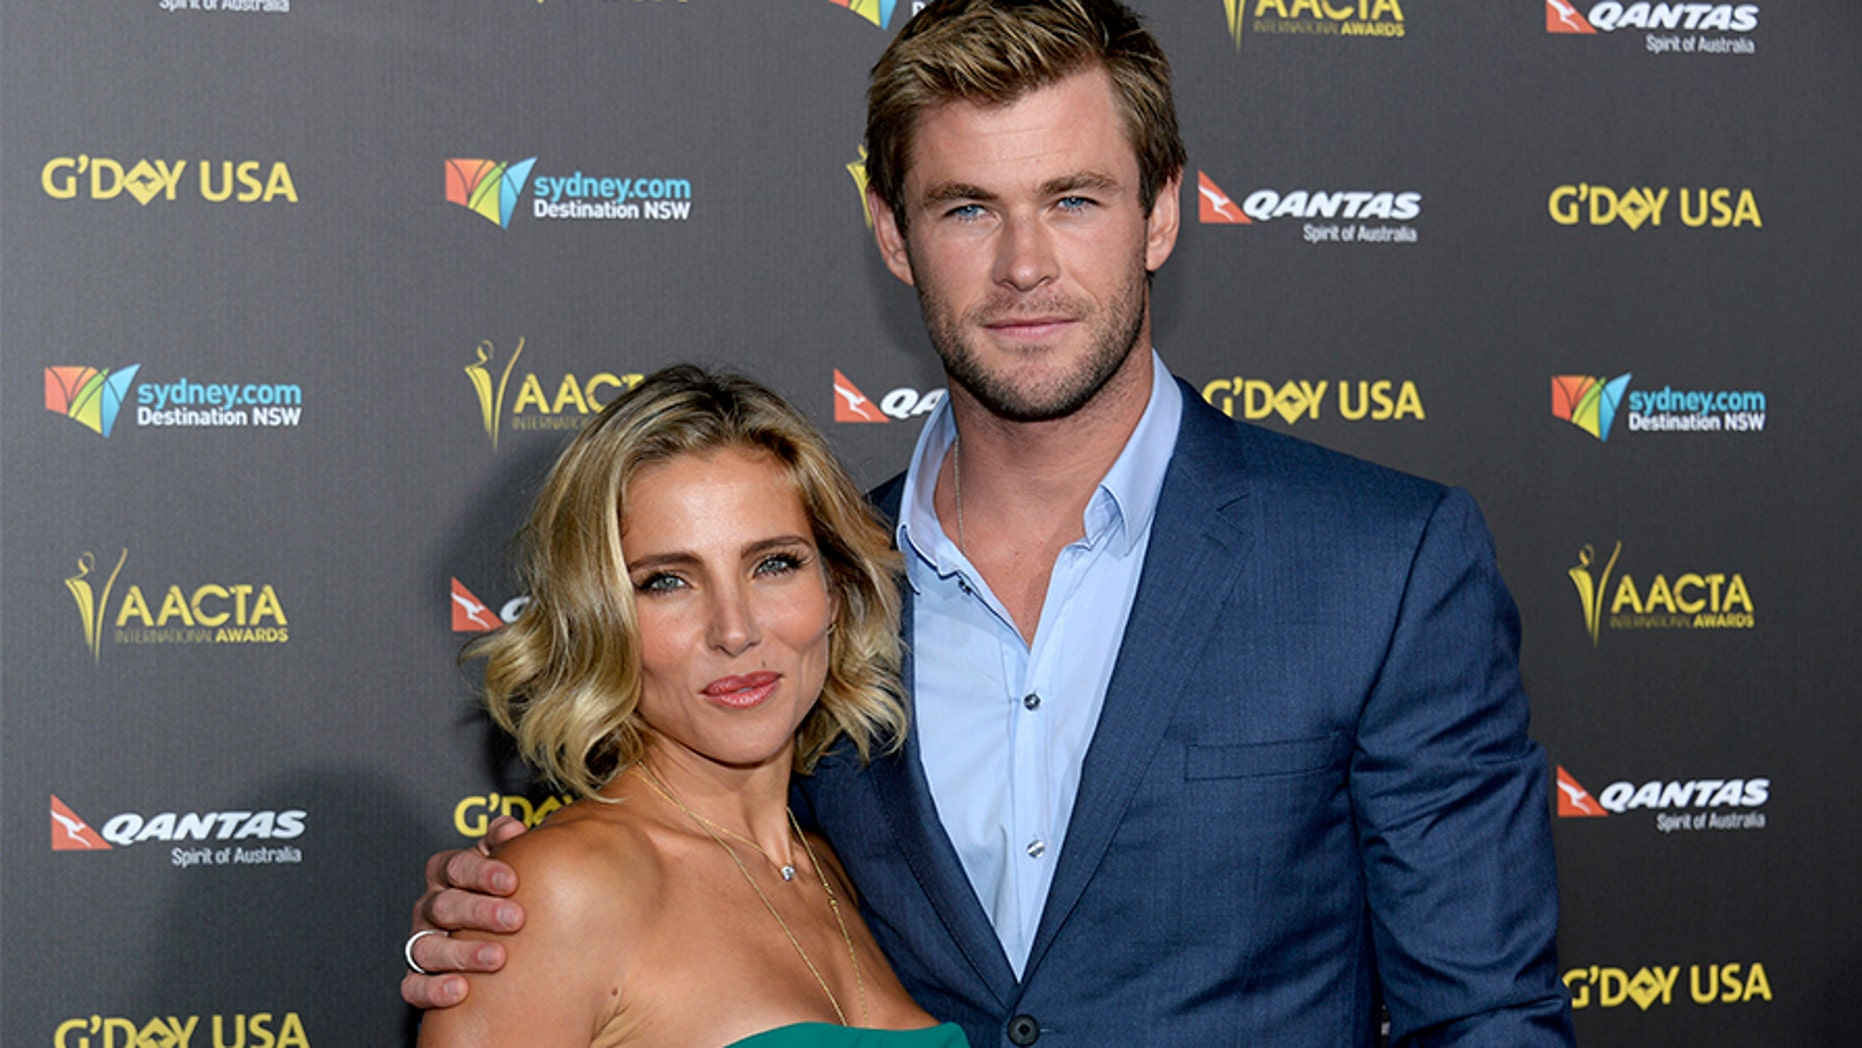 Actor Chris Hemsworth and wife Elsa Pataky at the Hollywood Palladium in Los Angeles, California January 31, 2015.